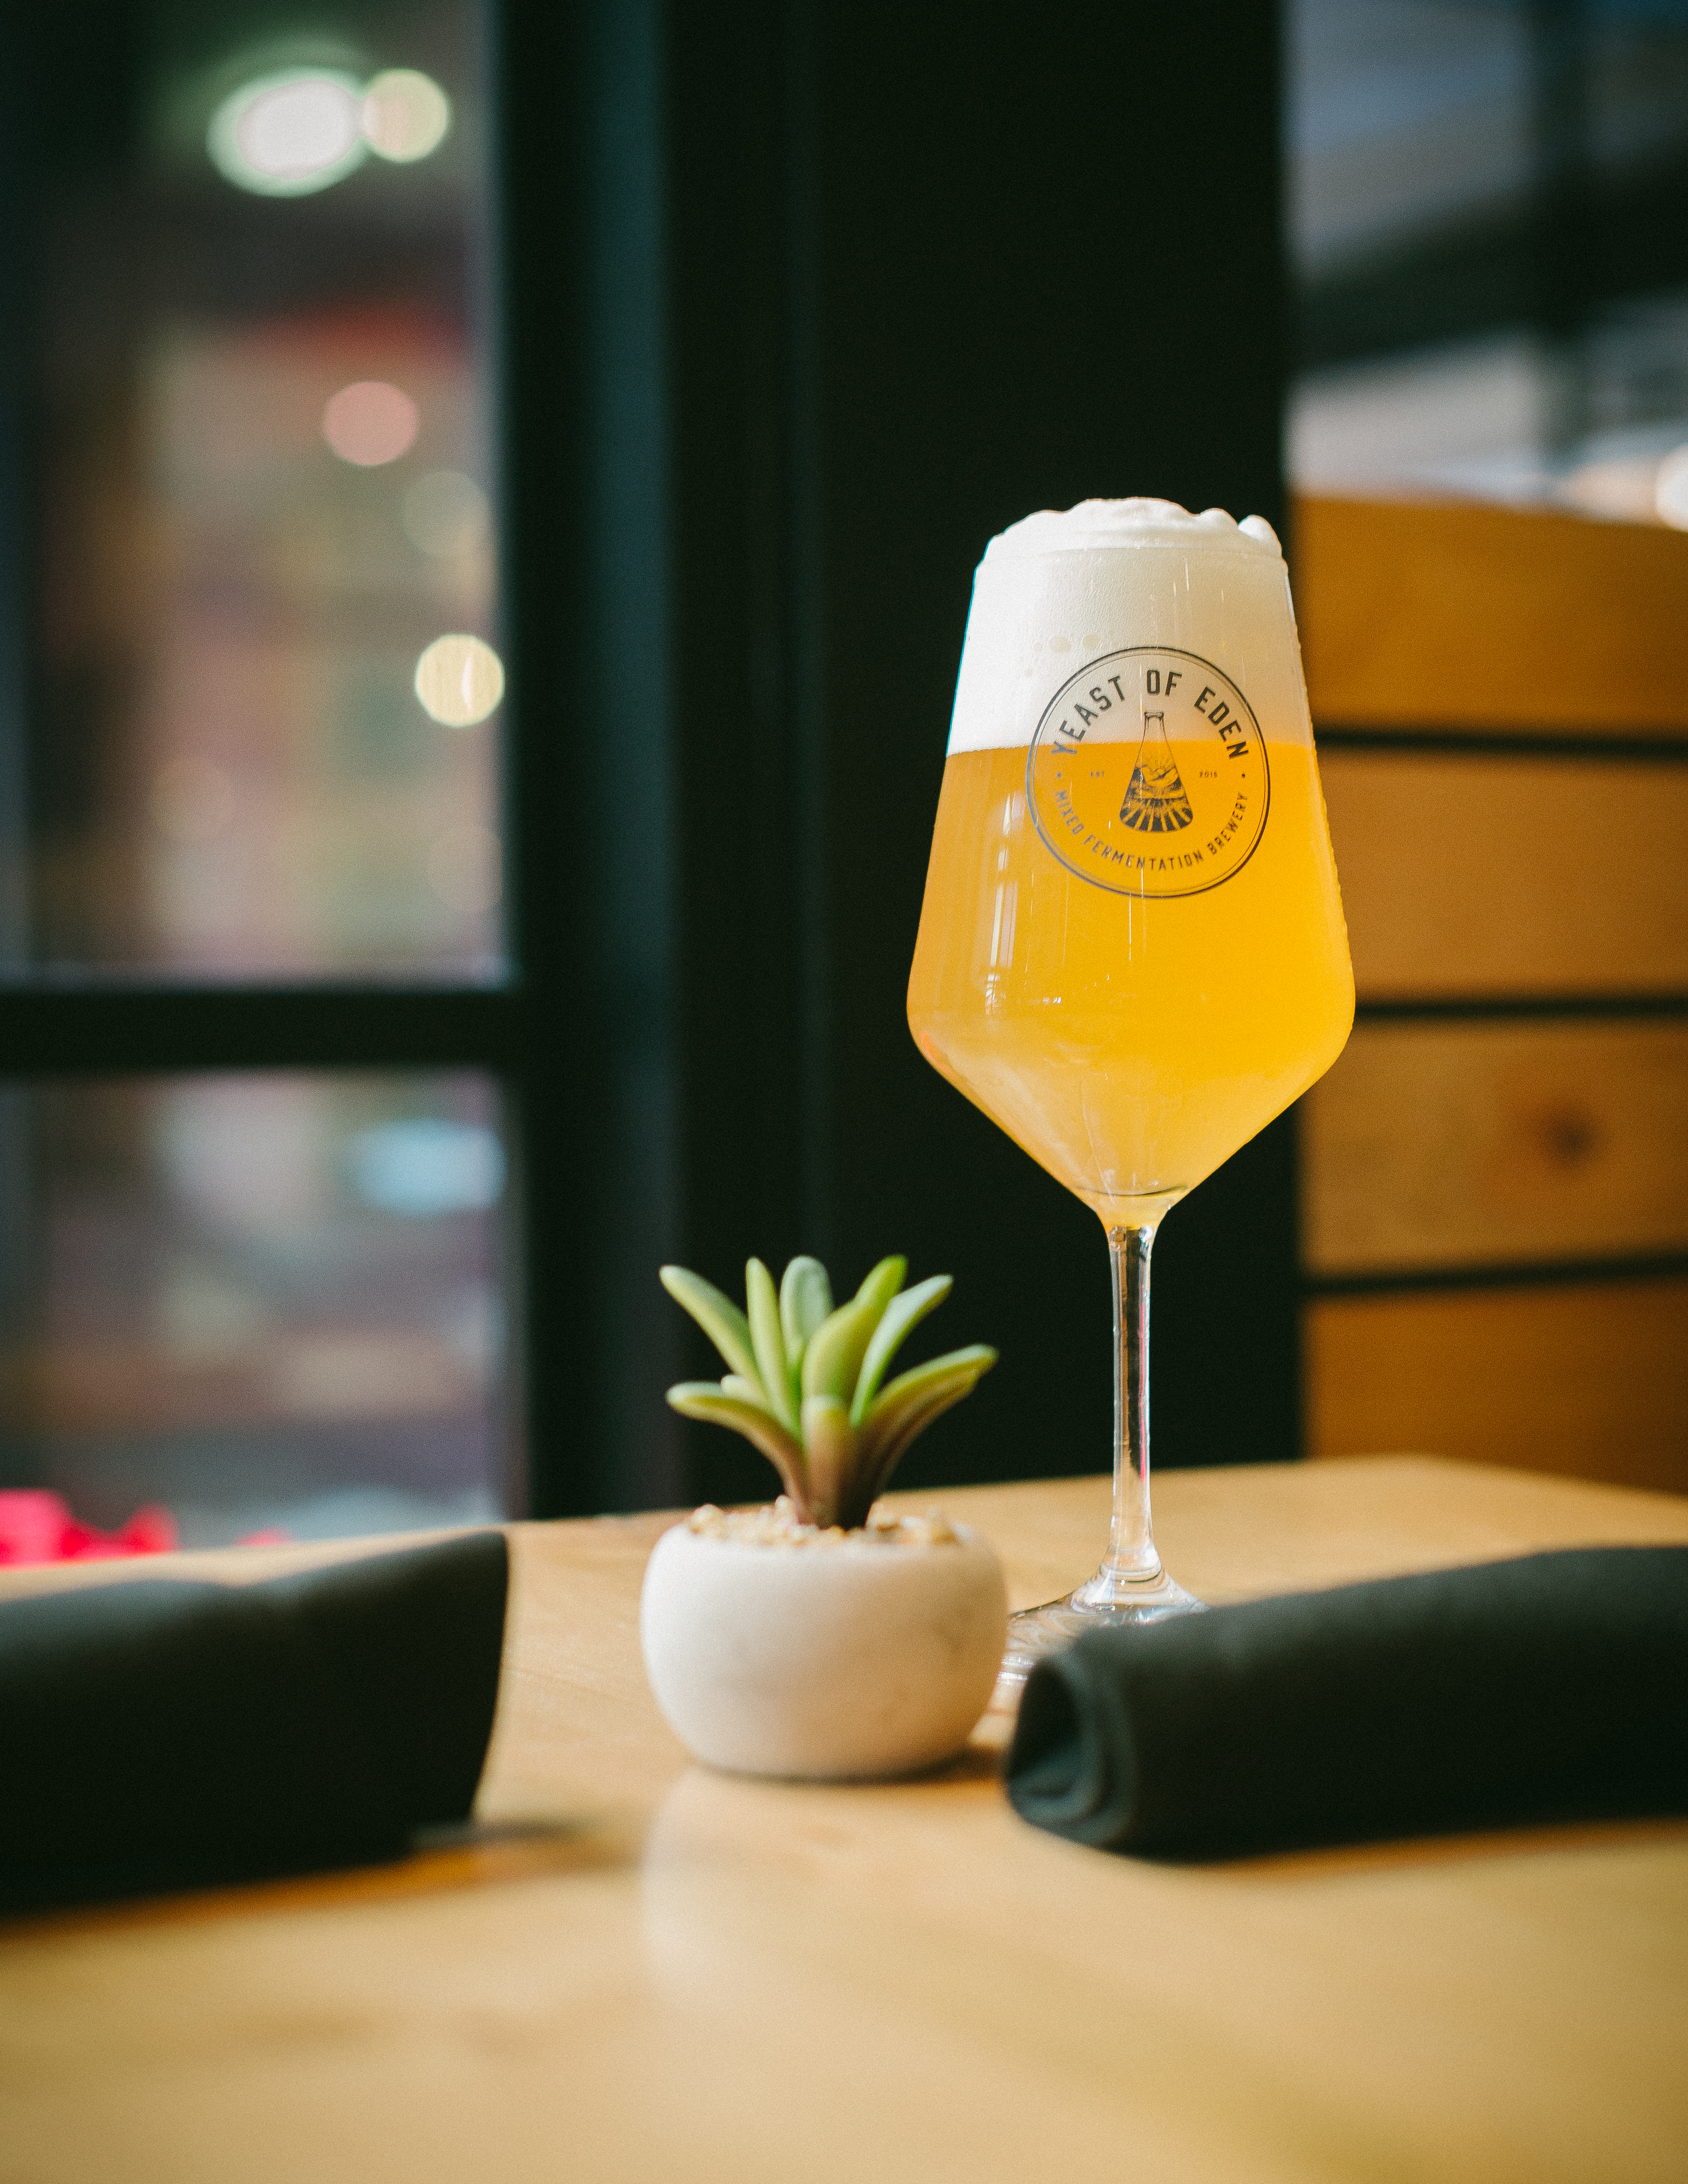 Experimental Brewery and Restaurant From Alvarado Street Opens in Carmel